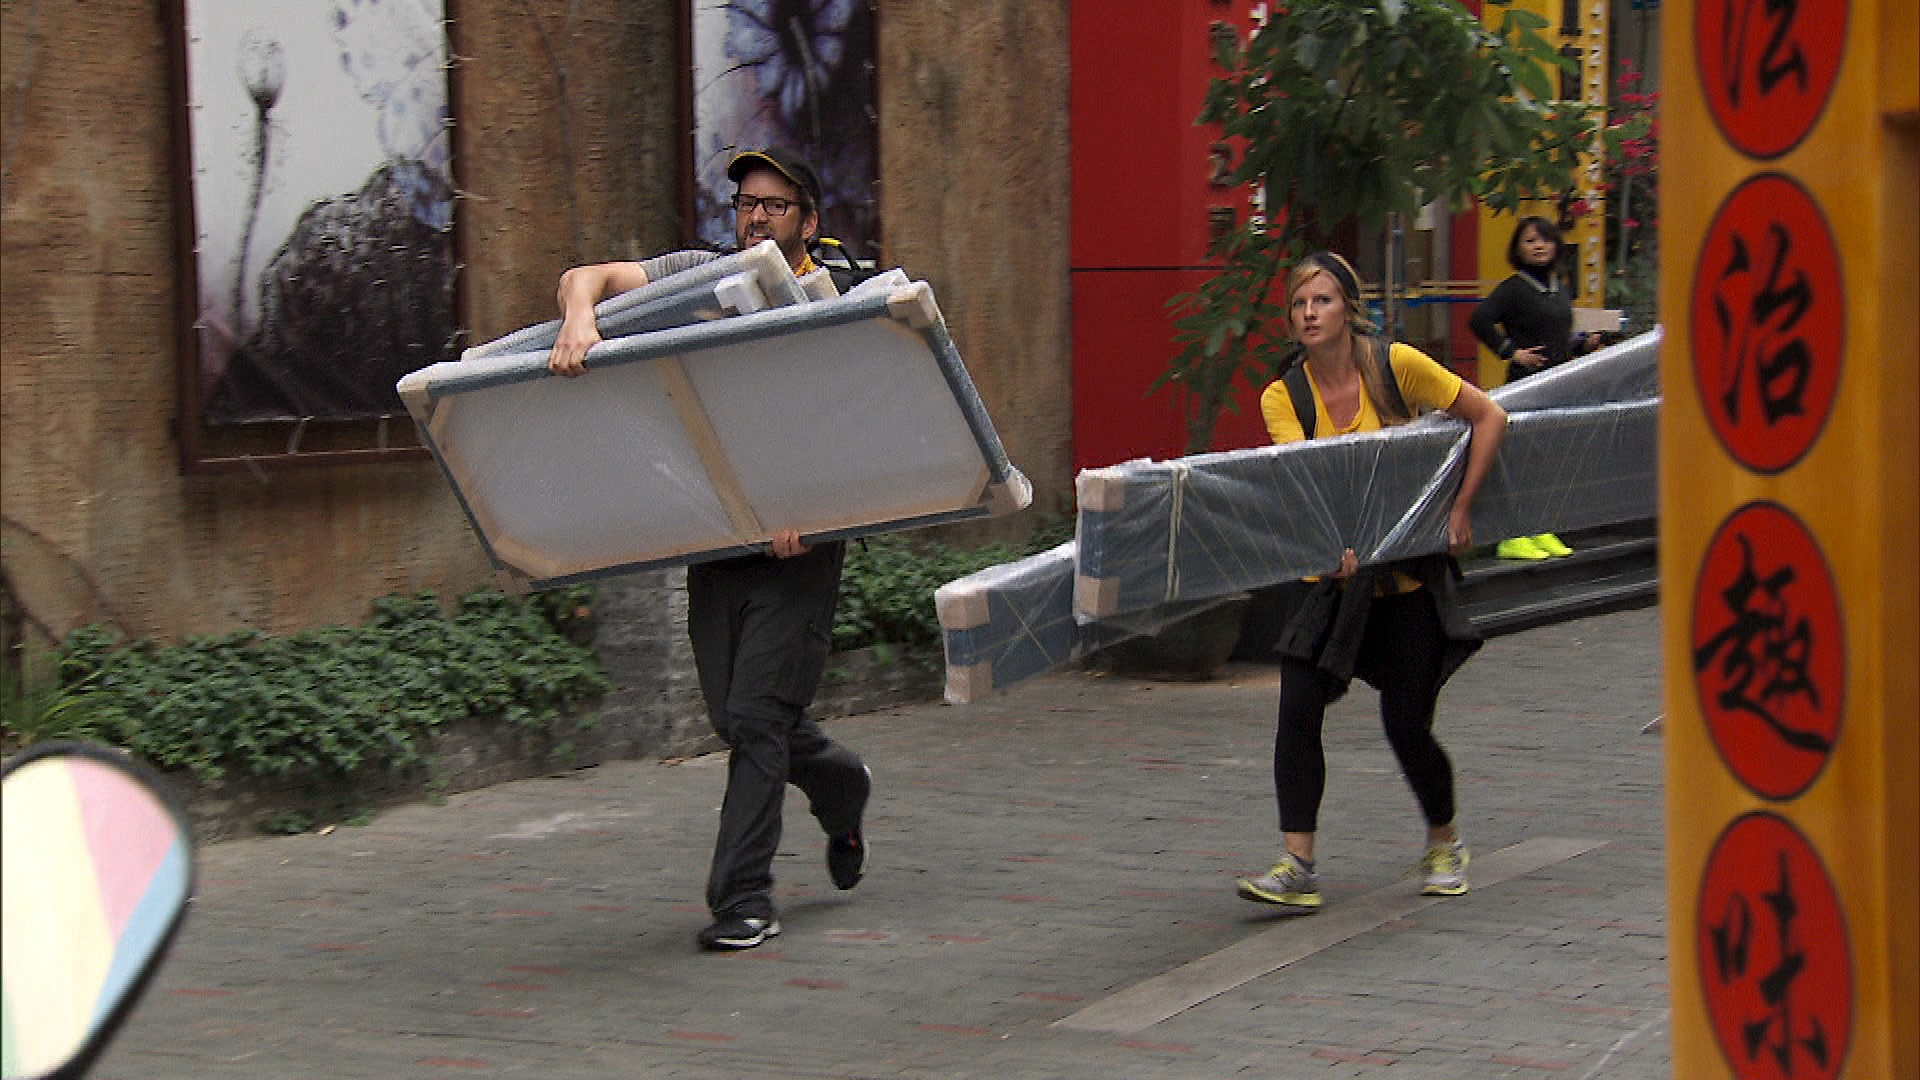 In Detour B, Burnie and Ashley run down the street to deliver the paintings.